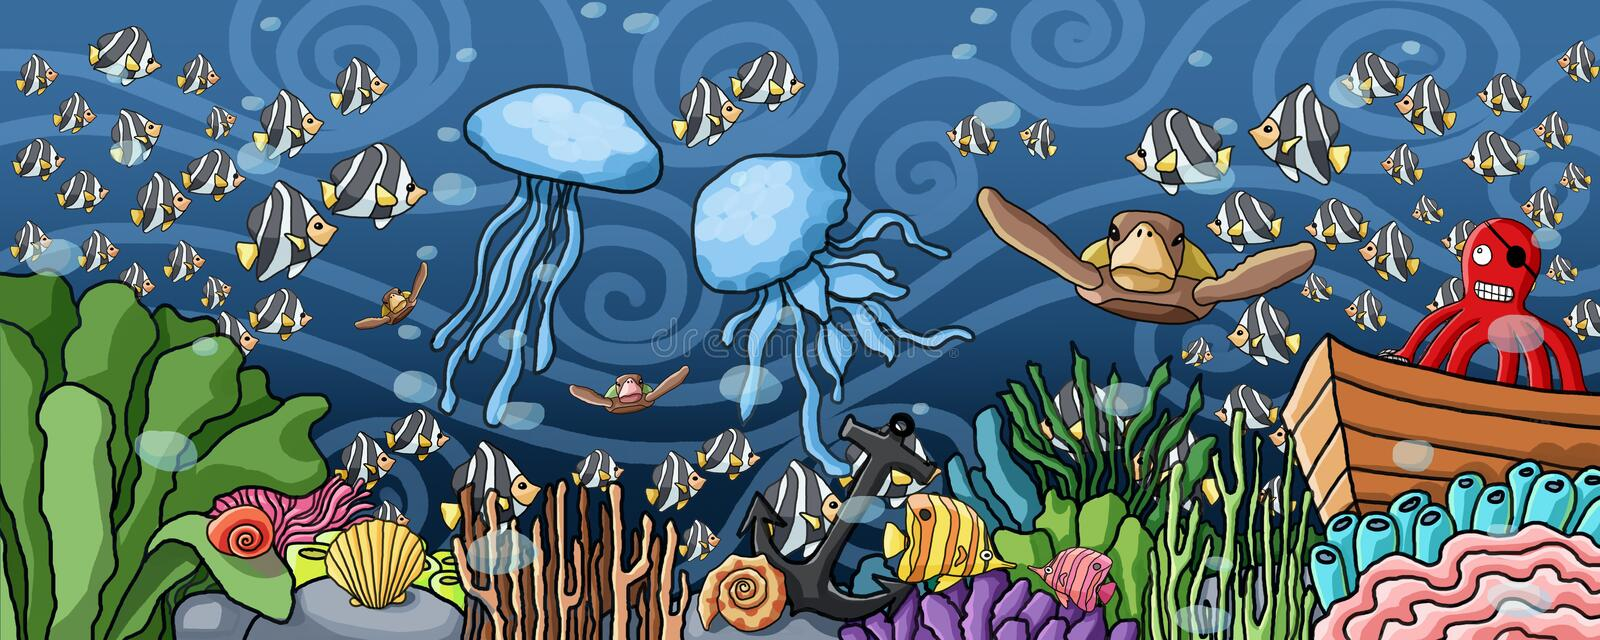 Underwater world colorful and nature paint. Algae and coral reefs are beautiful and colorful vector illustration